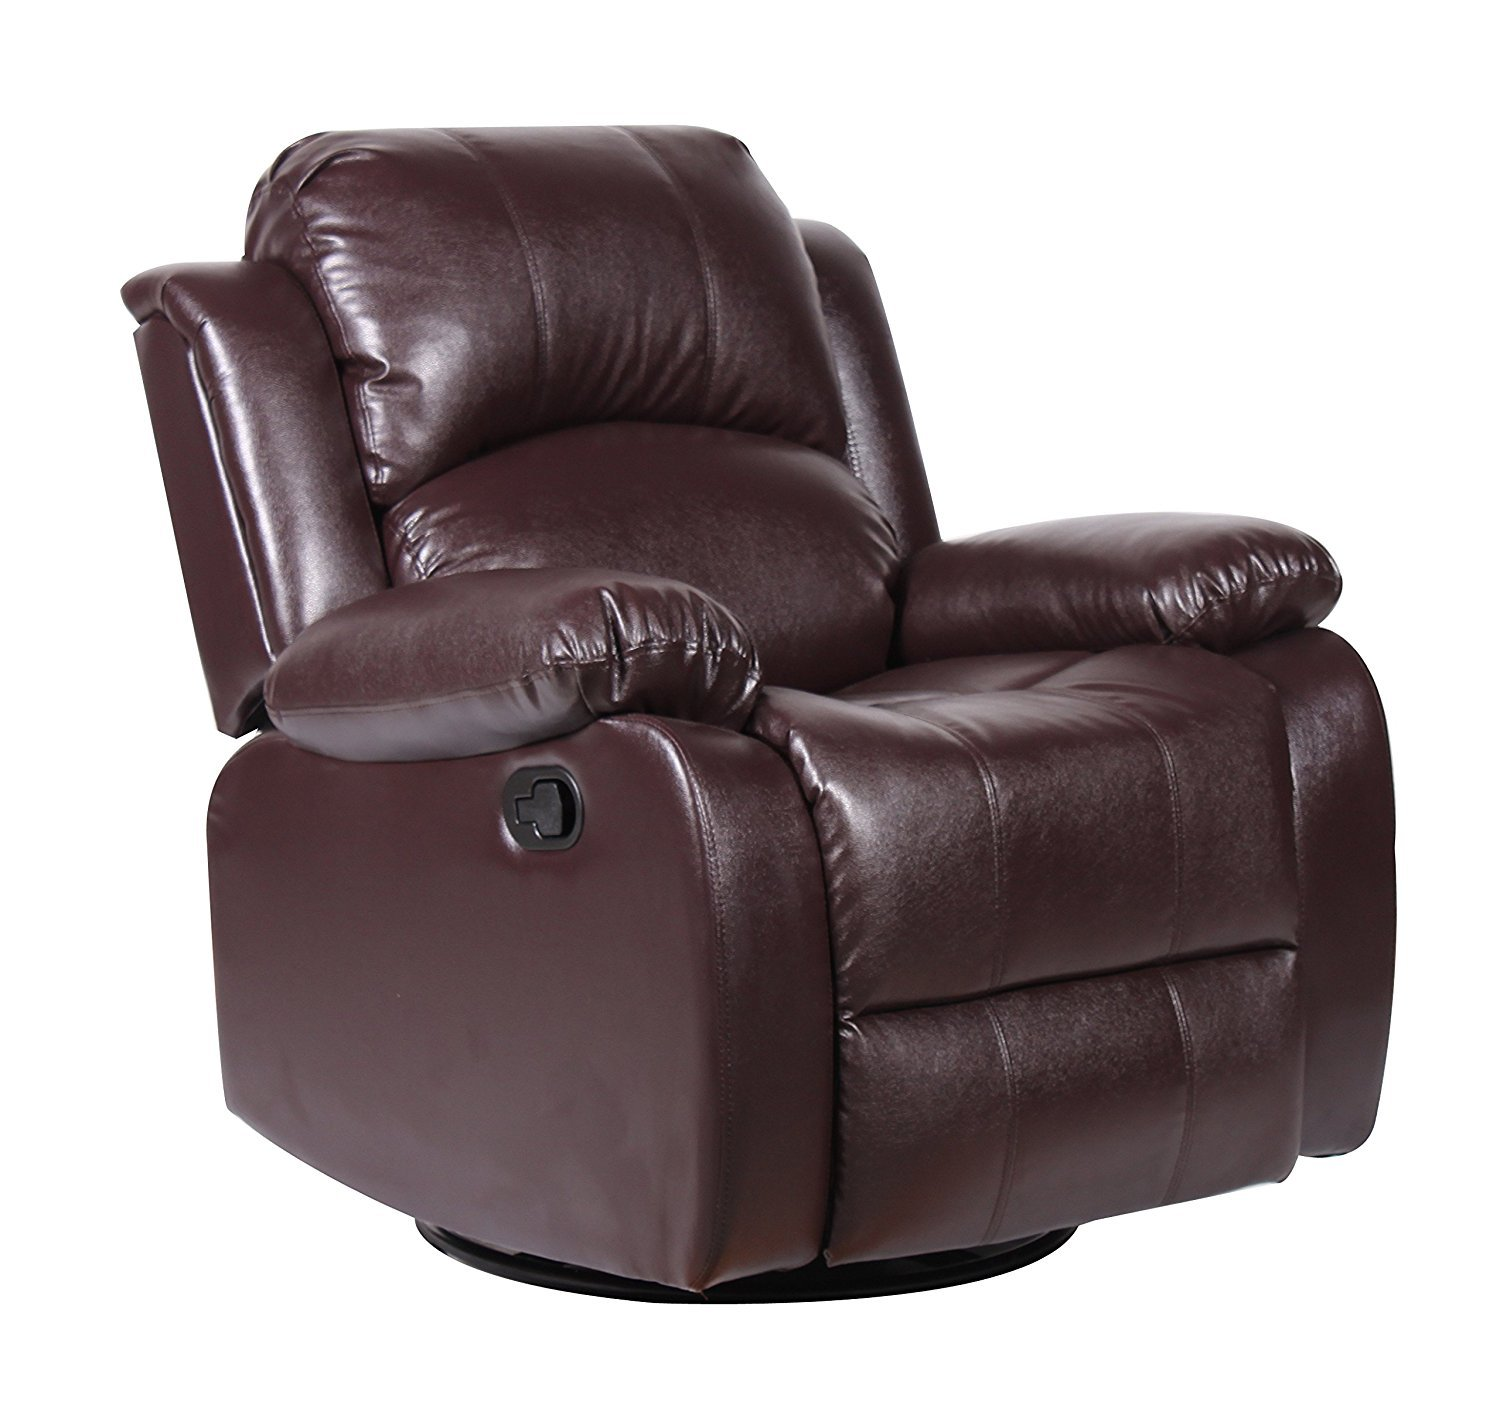 Swivel Rocker Chairs For Living Room Home Furniture Design